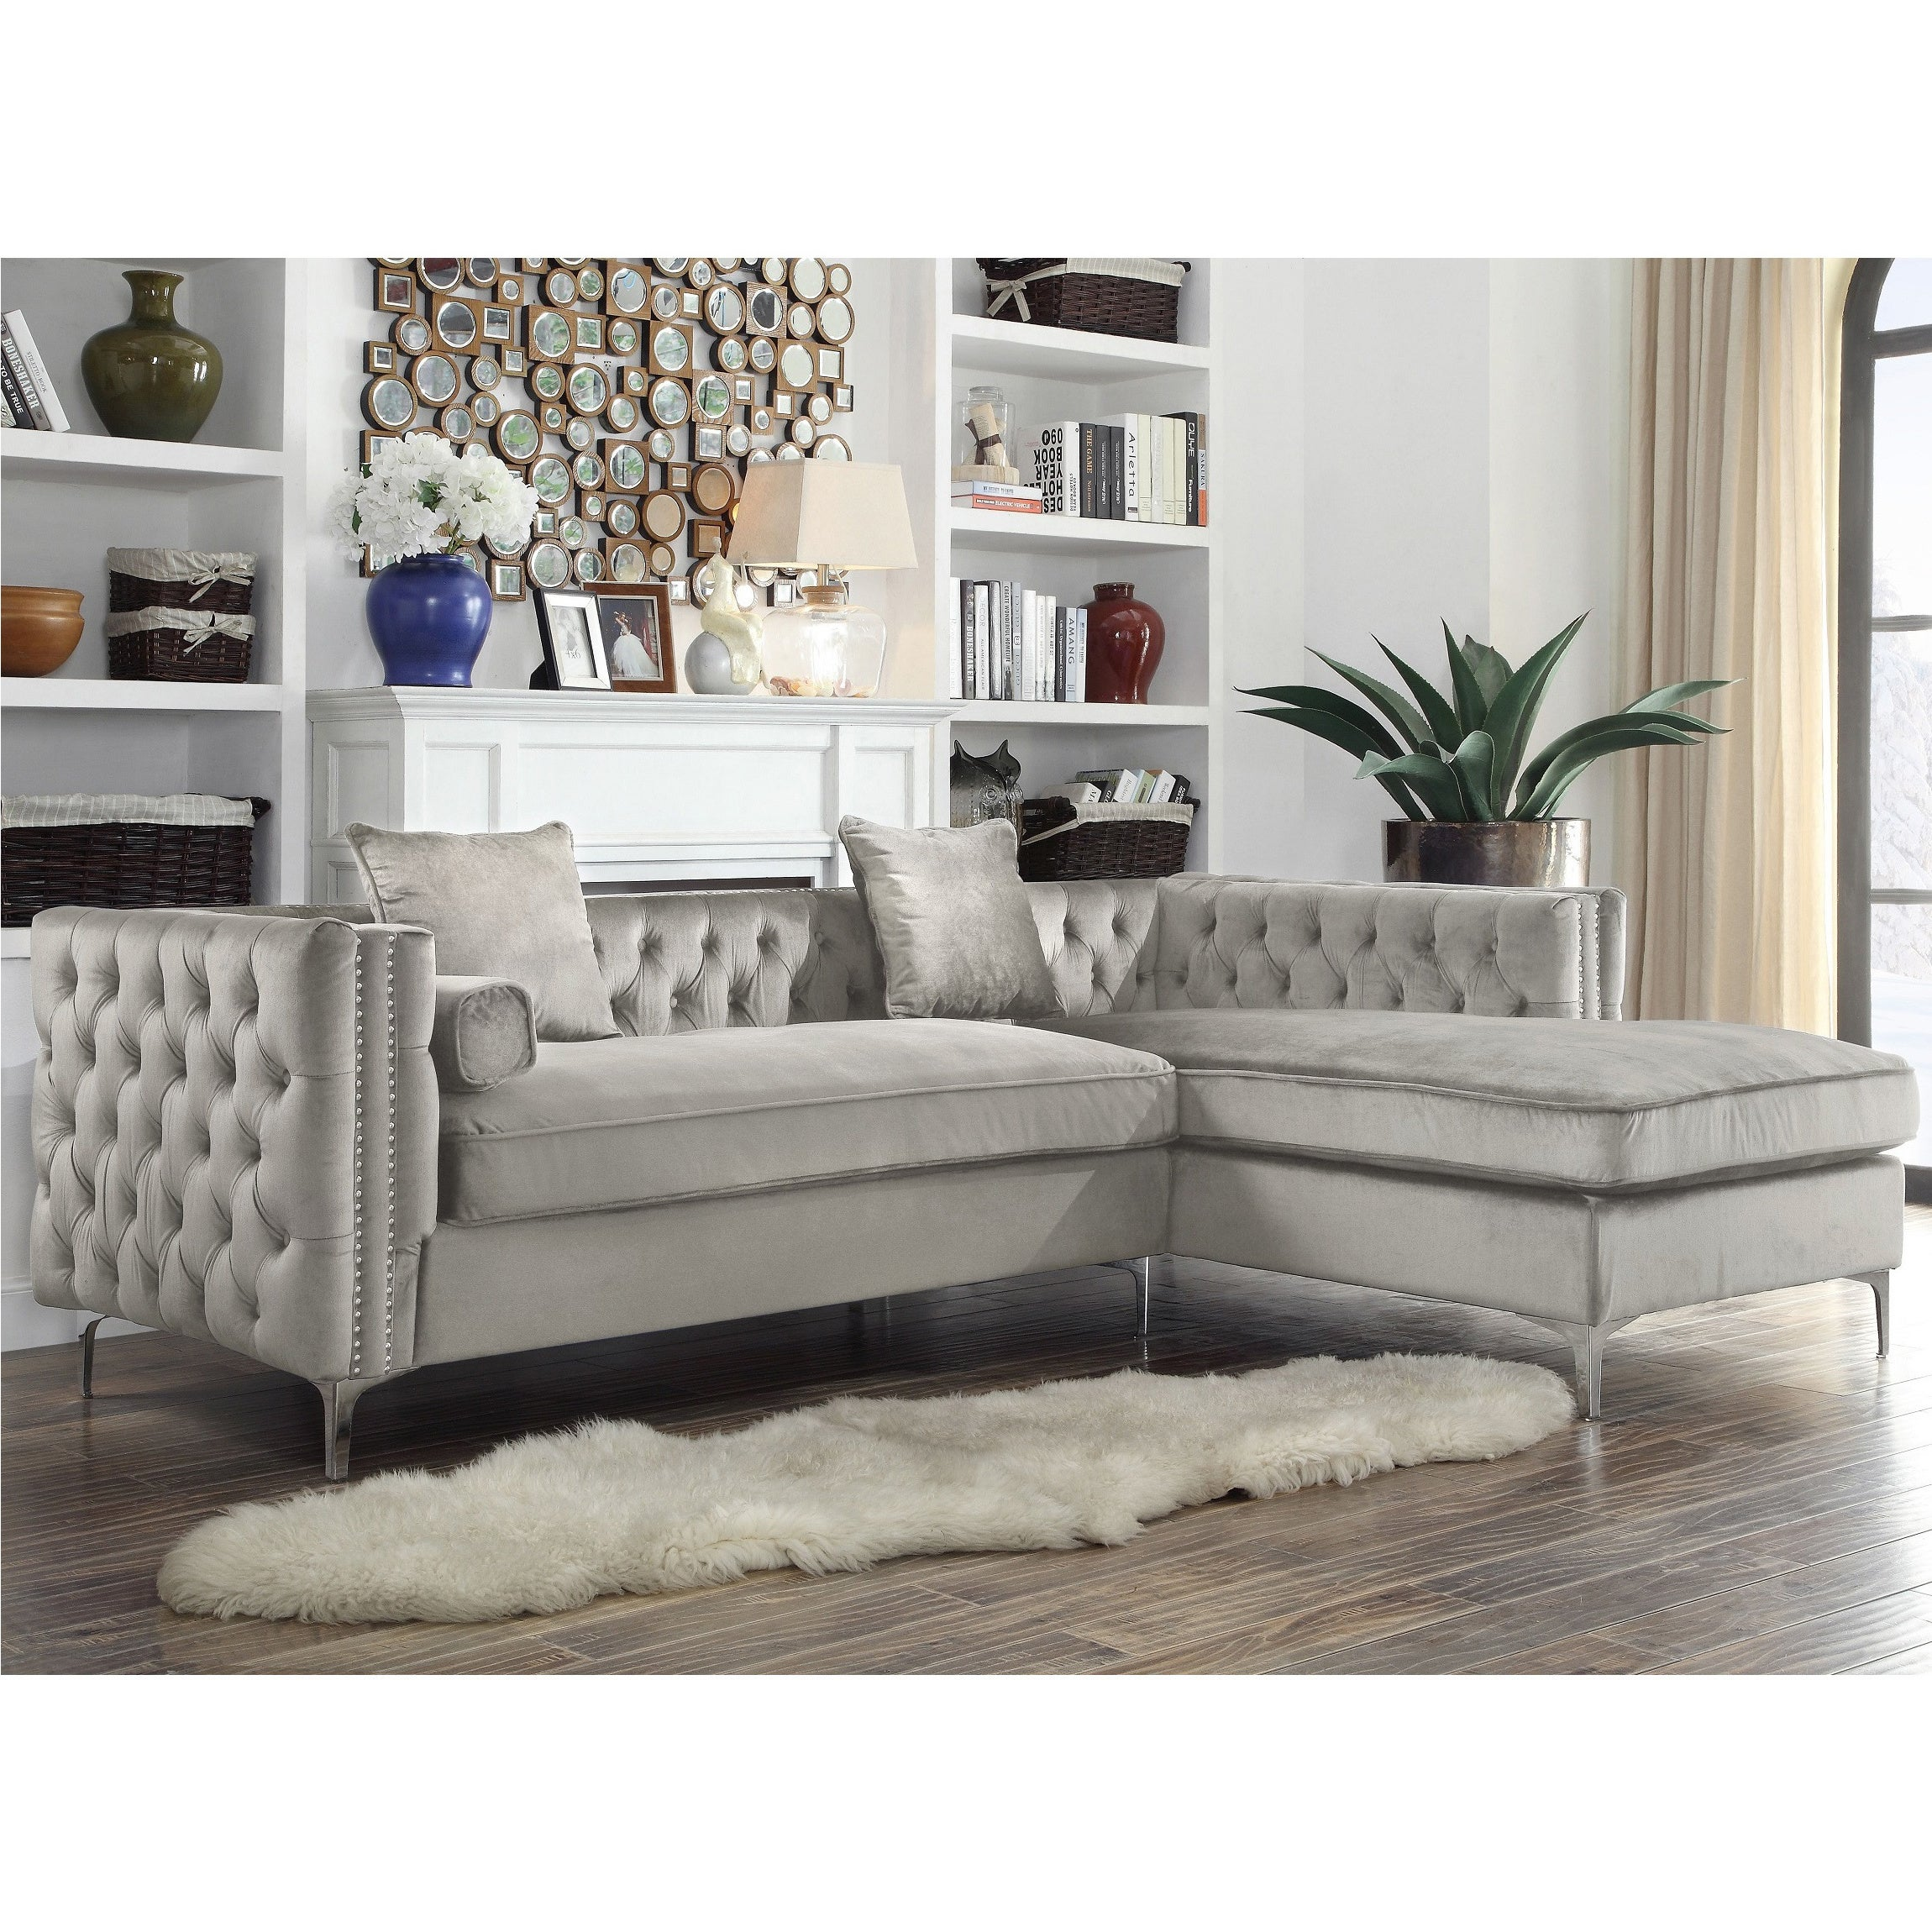 Monet Silvertone Tufted Velvet